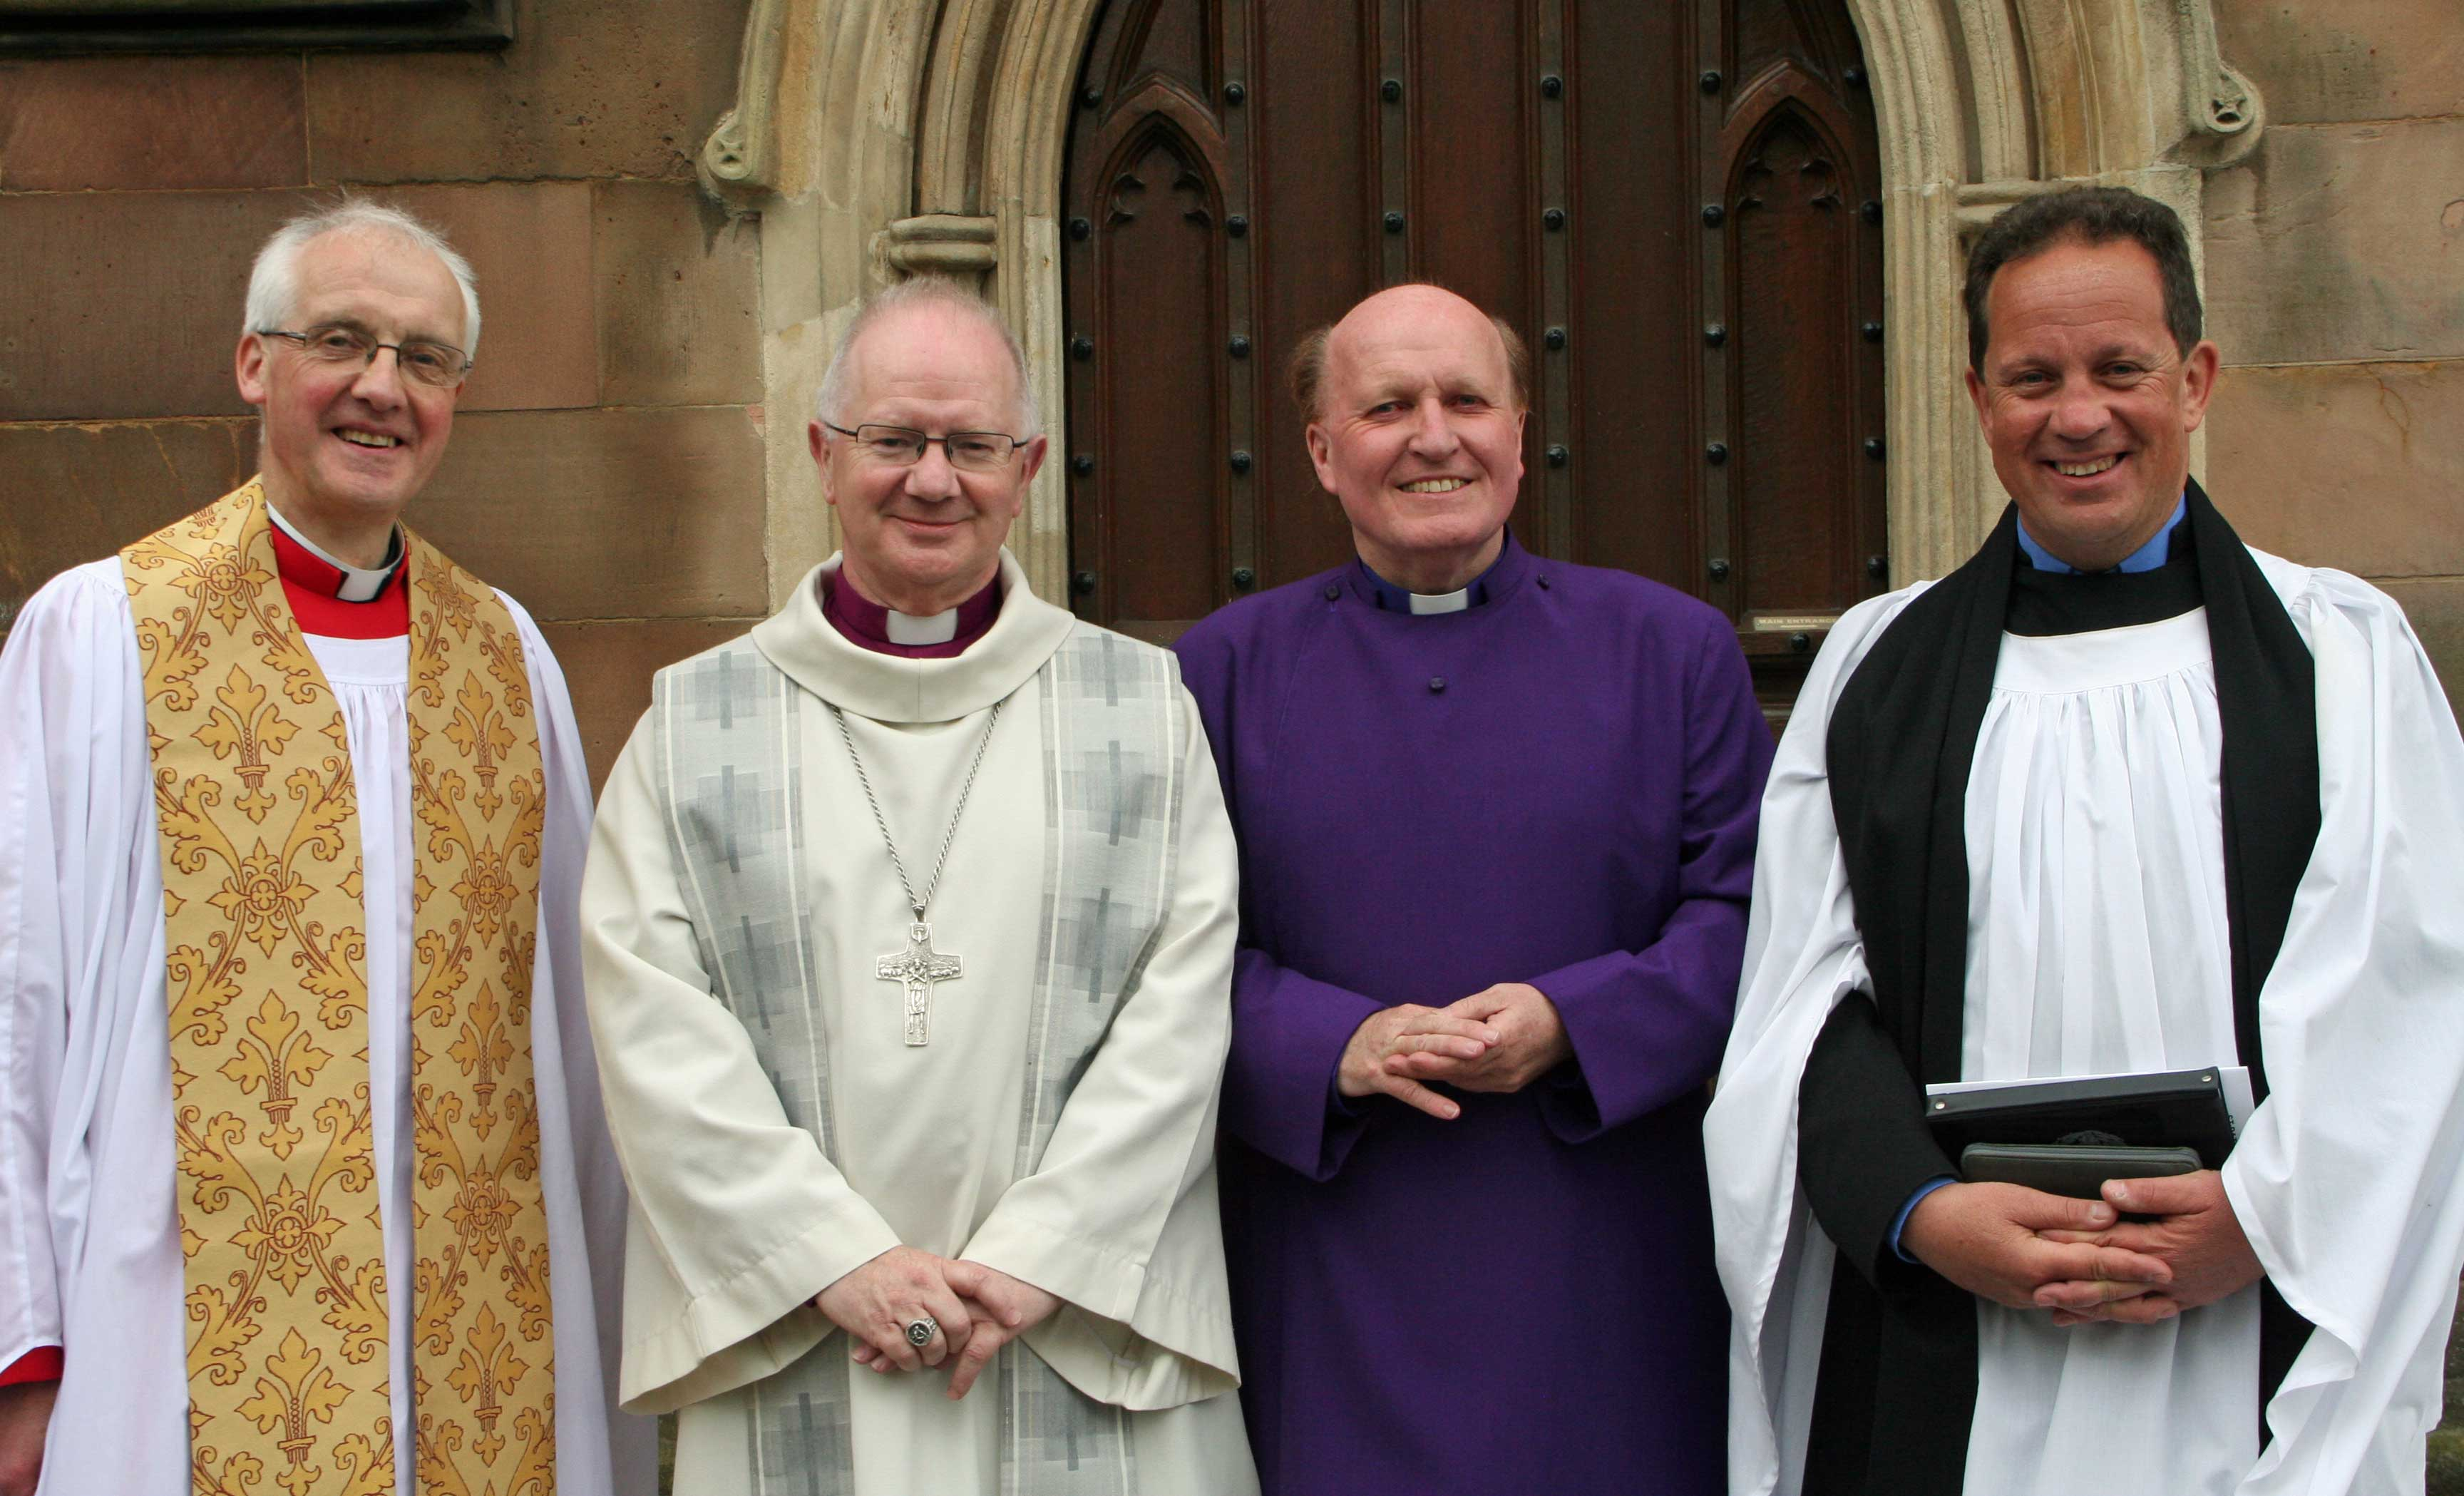 Clergy before the service